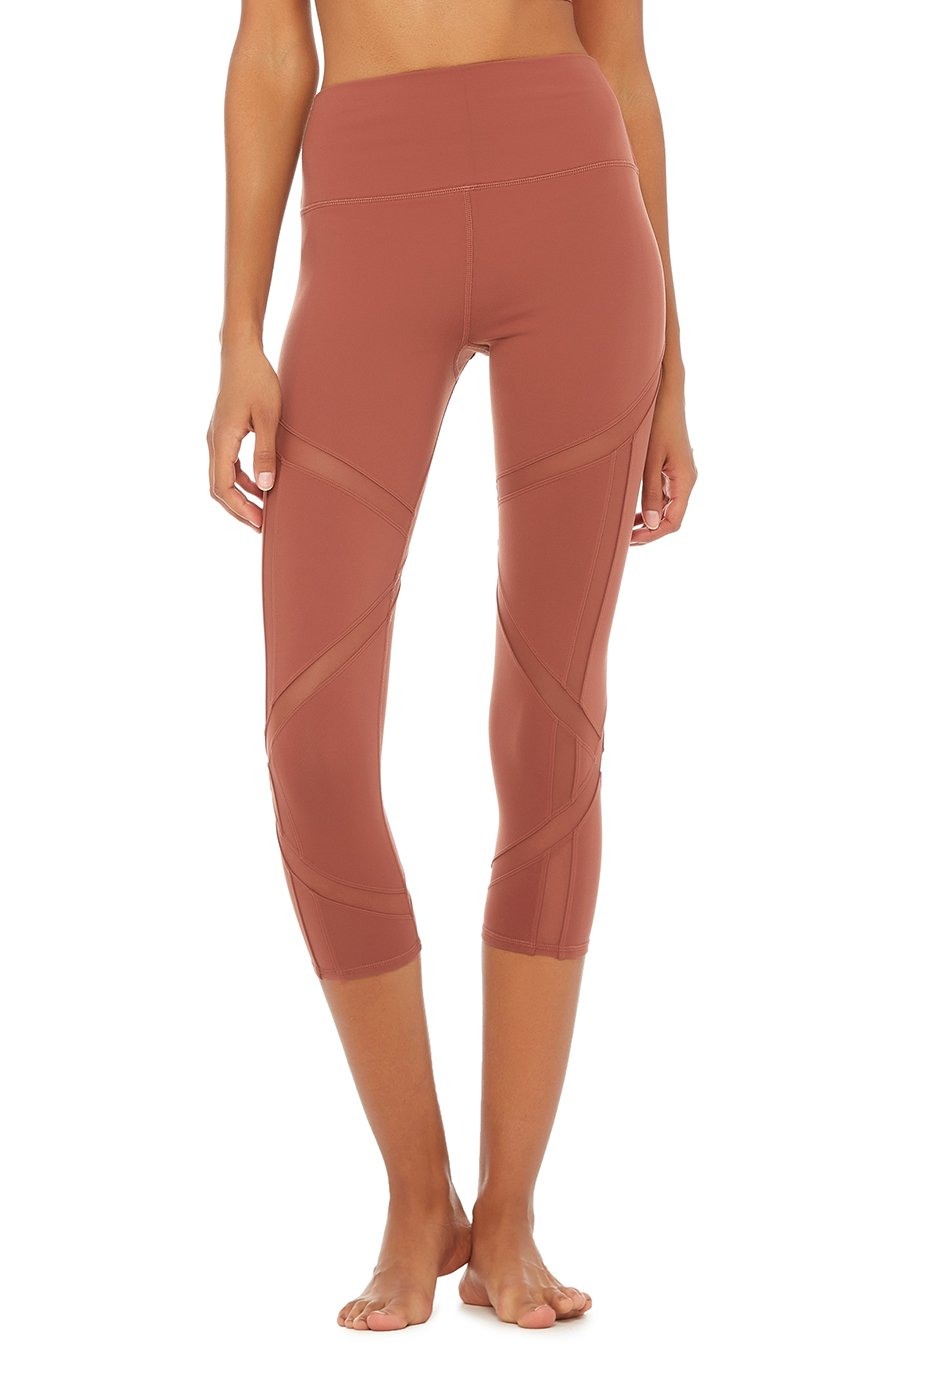 Alo Yoga High-Waist Laced Capri - Earth